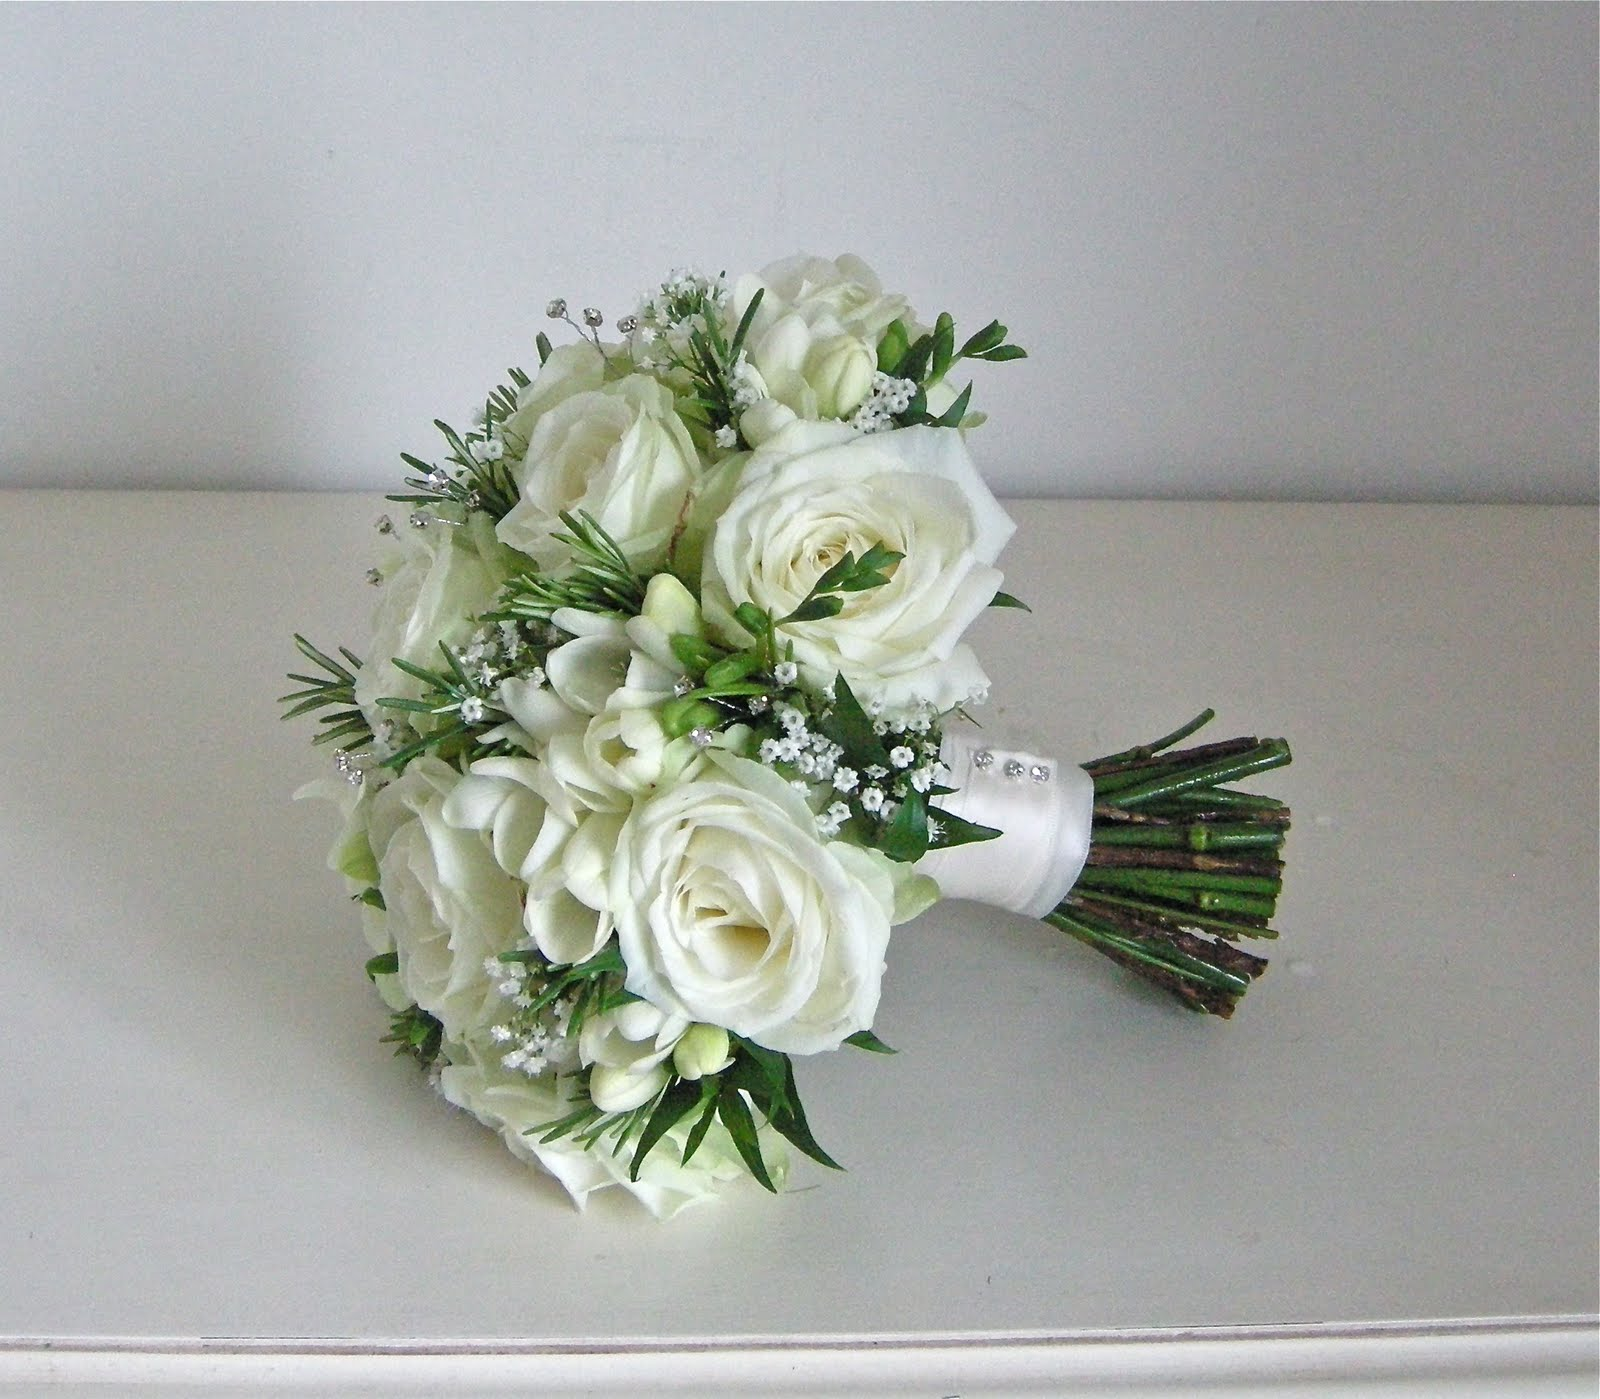 Wedding Flowers: Wedding Flowers Blog: Emma's Green And White Wedding